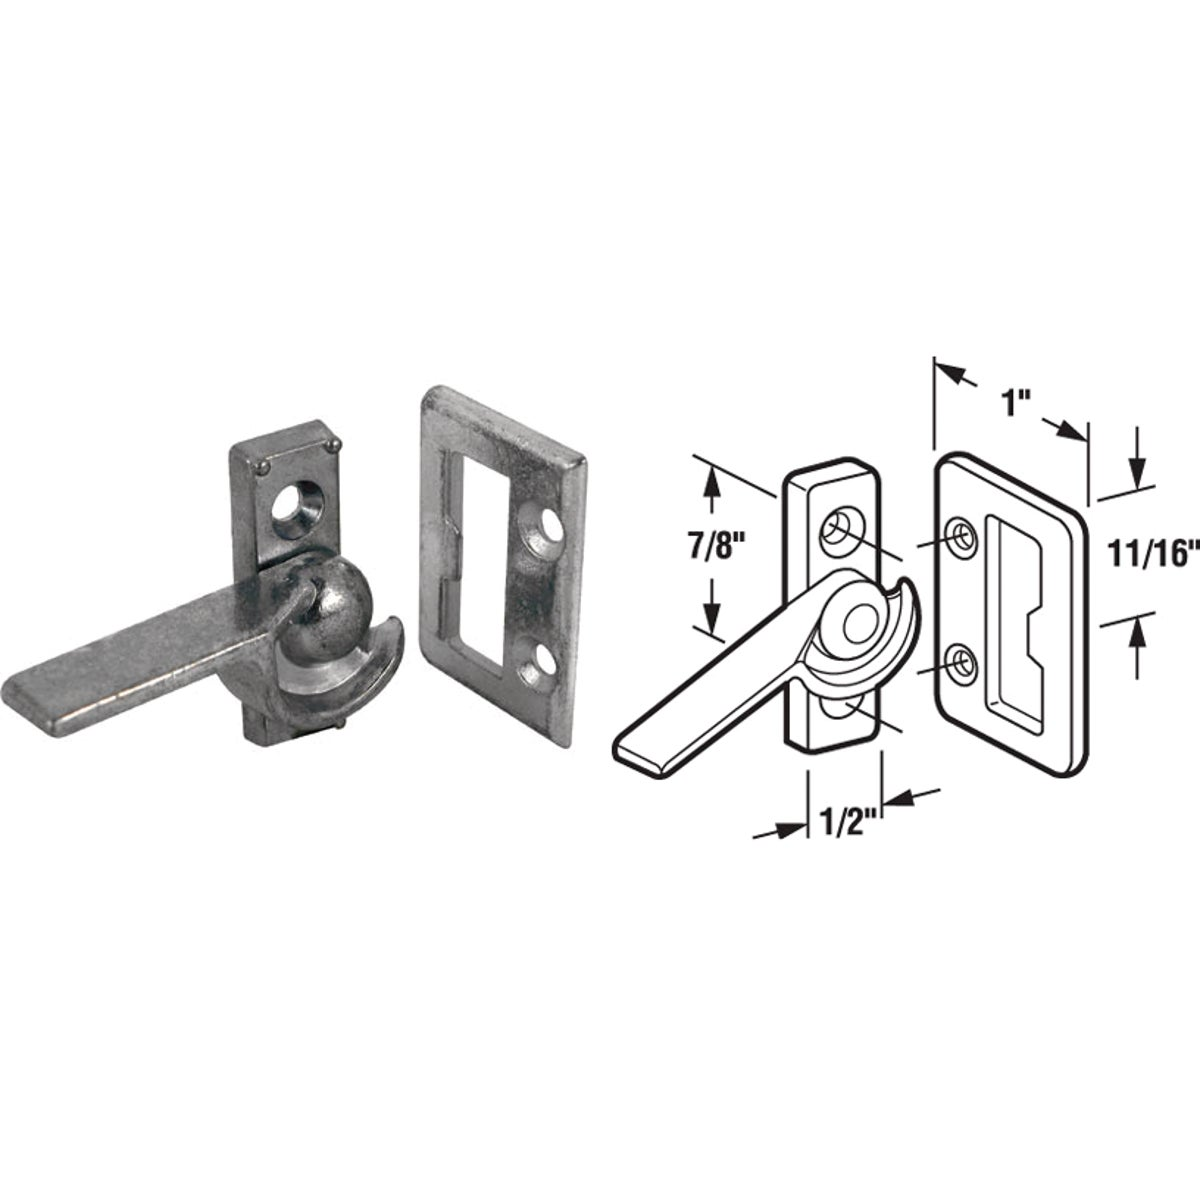 Slide-Co Sliding Window Latch